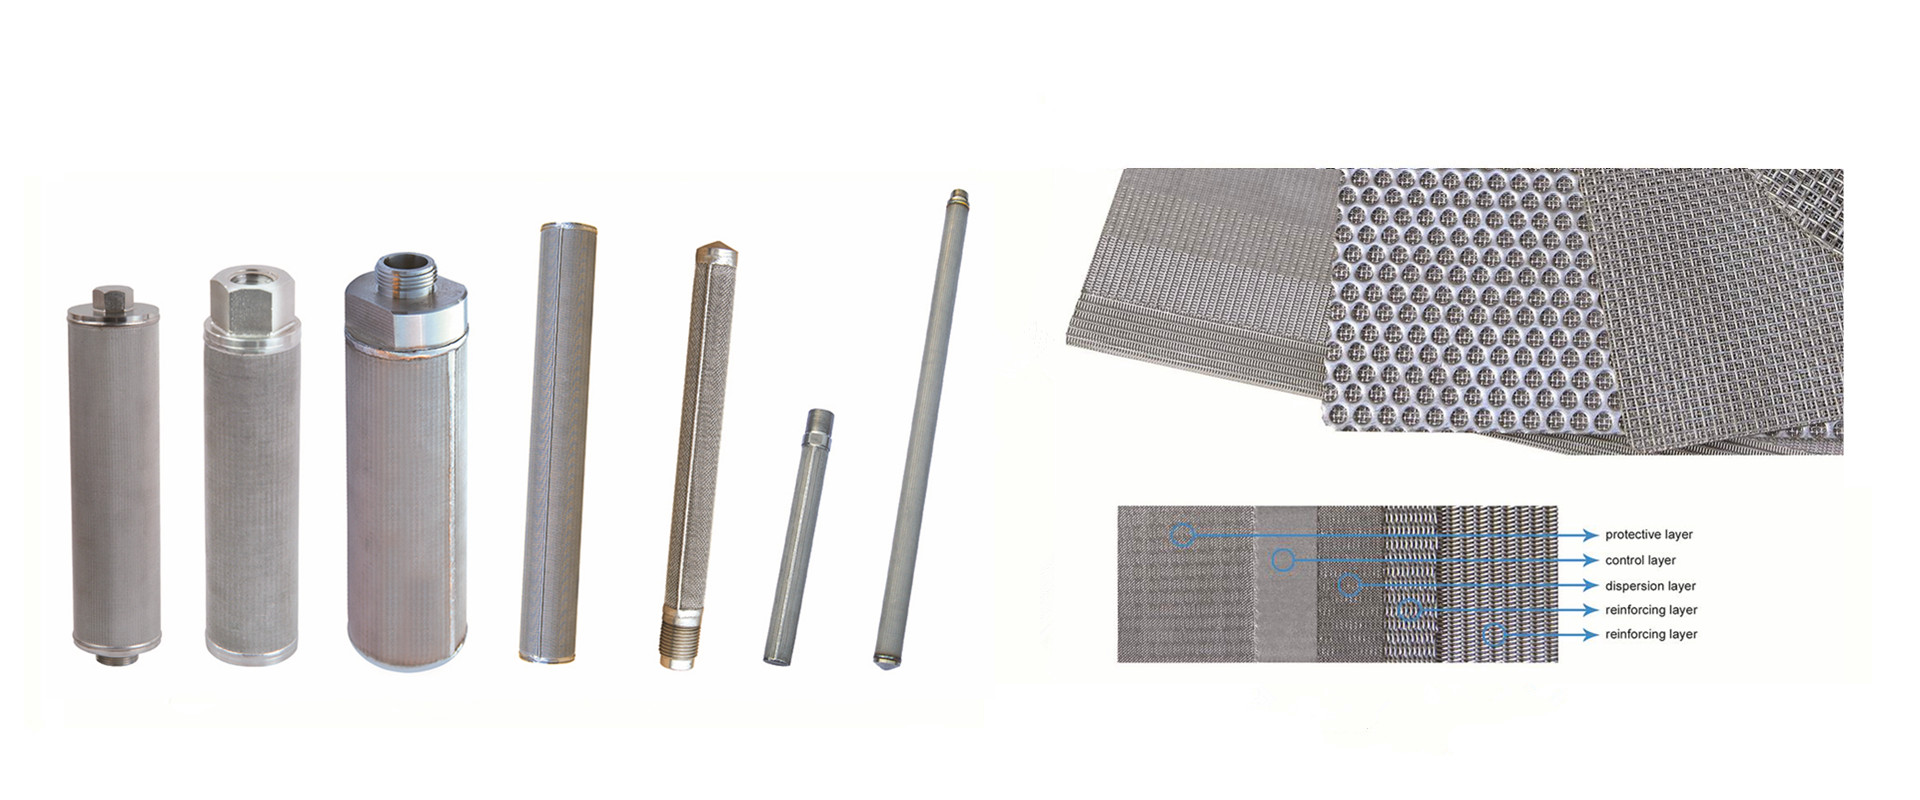 Featured products:Sintered candle filters,hydraulic cartridge filters